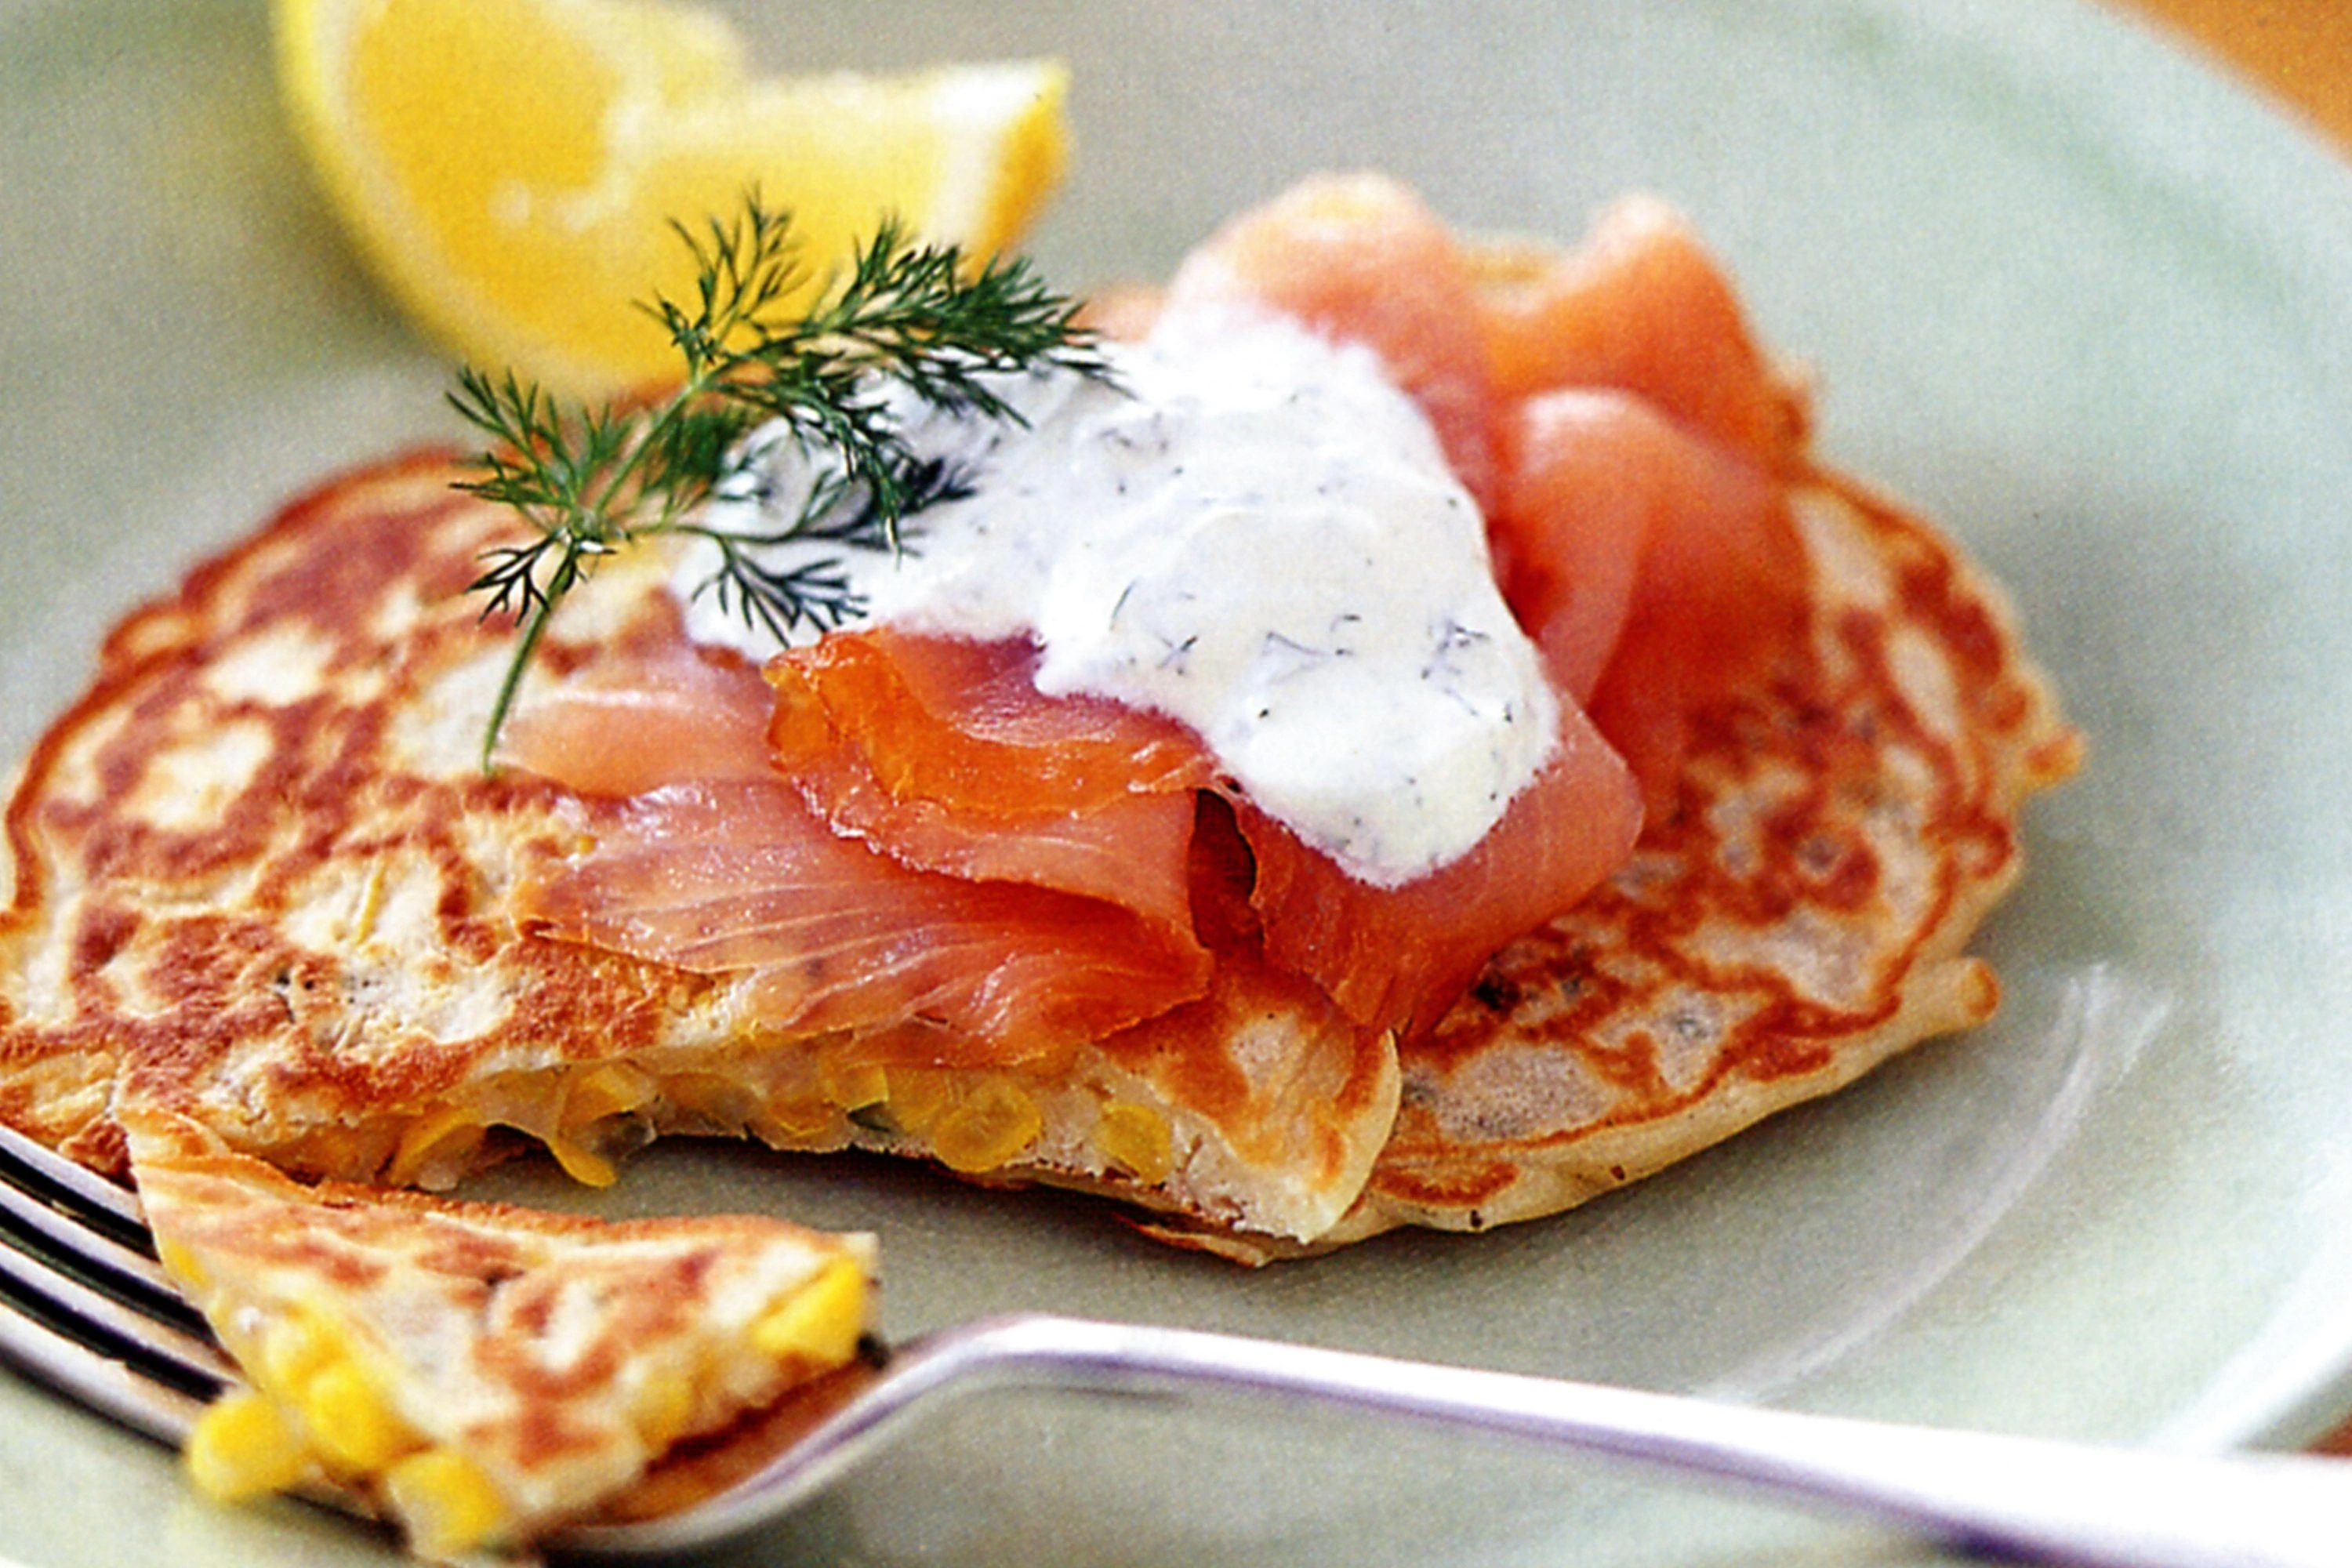 corn-and-chive-pancakes-with-smoked-salmon-21358-1.jpeg